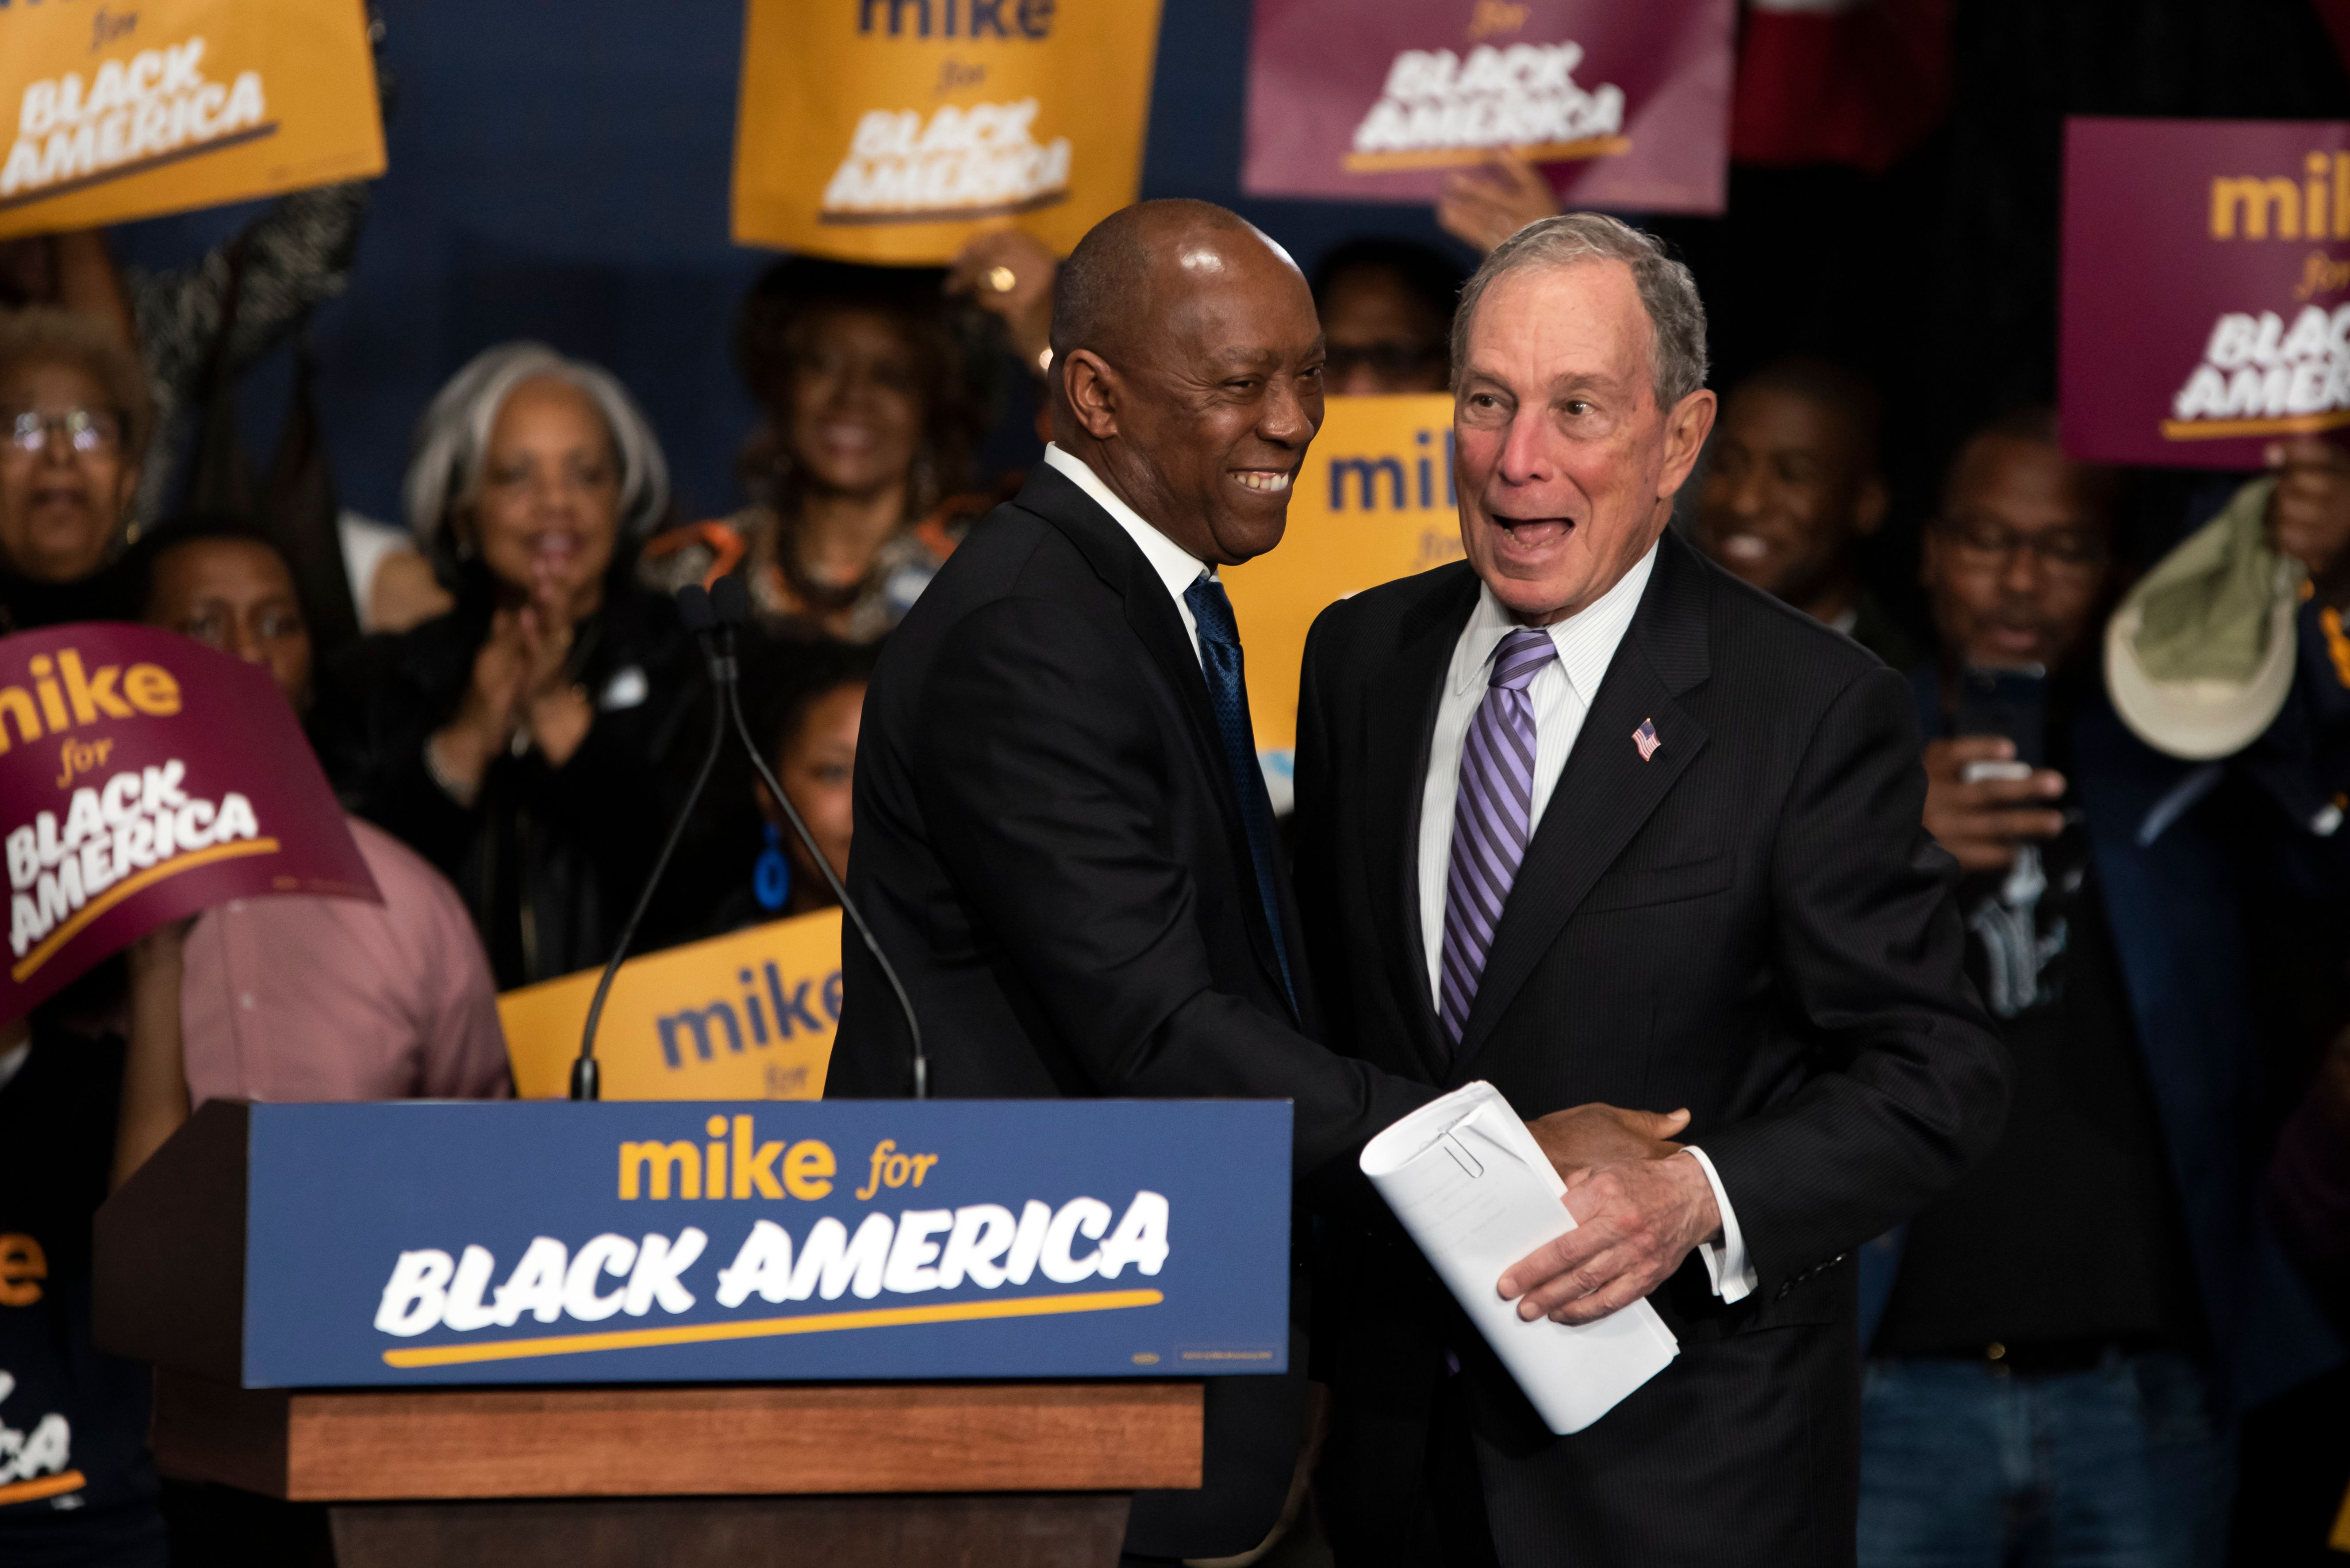 """Democratic presidential hopeful Mike Bloomberg (R) arrives to speak at the """"Mike for Black America Launch Celebration"""" at the Buffalo Soldier National Museum in Houston, Texas, on February 13, 2020. (MARK FELIX/AFP /AFP via Getty Images)"""